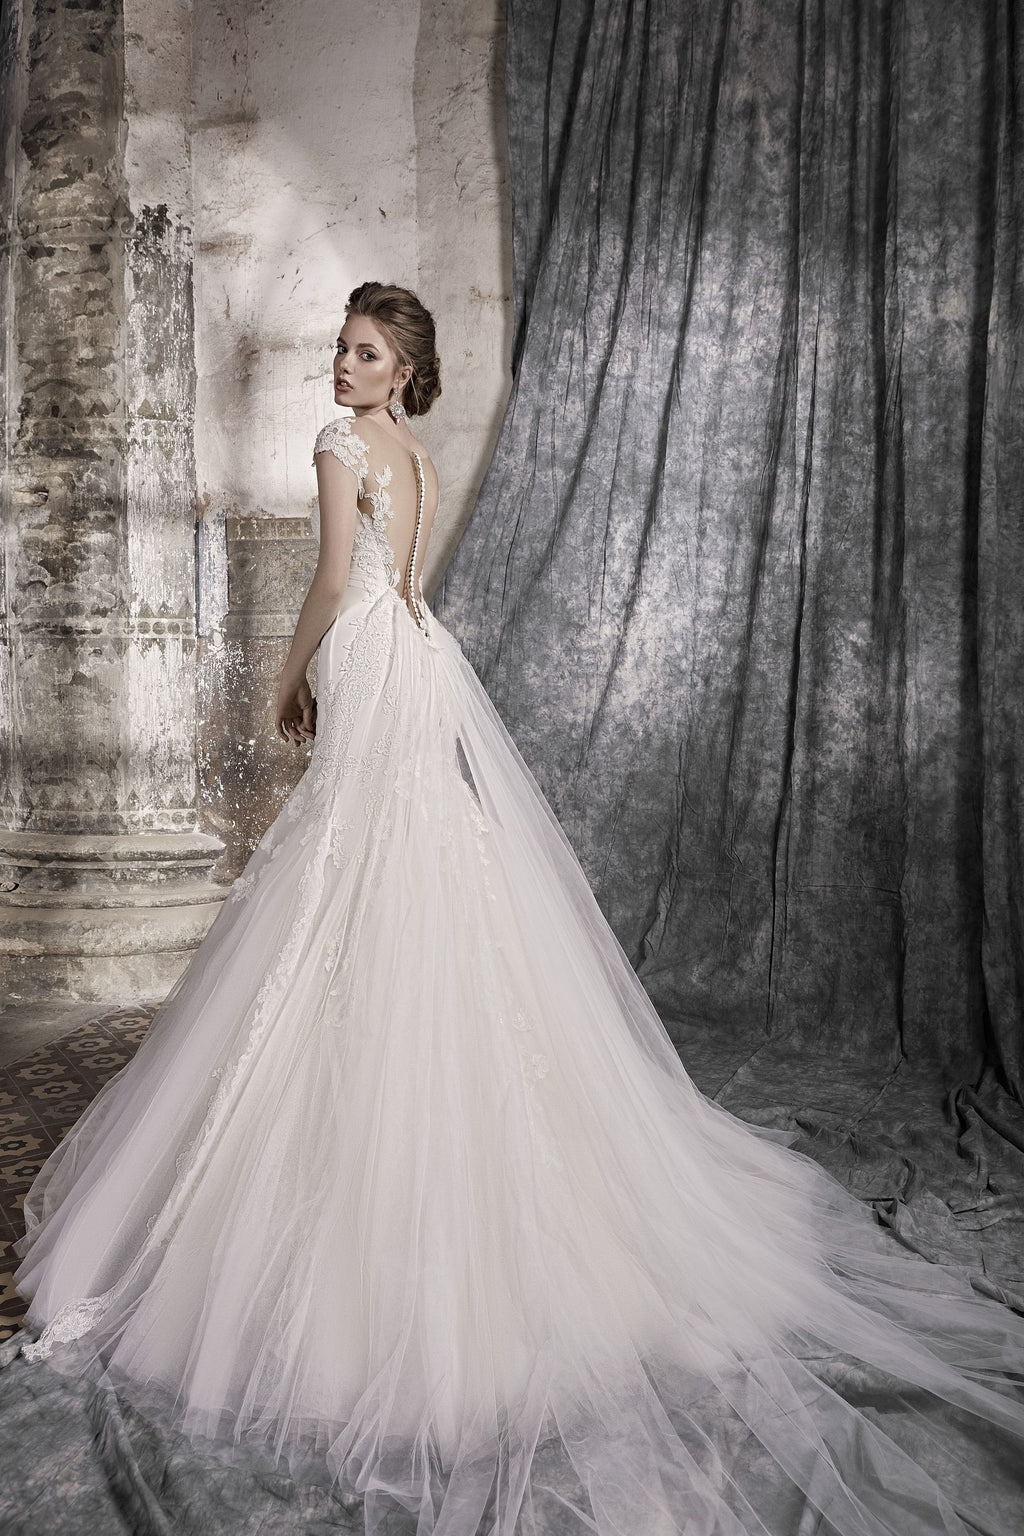 This gorgeous mermaid dress with lace appliques features a sweetheart bodice draped with tulle, an illusion V-back with a line of buttons, and a removable tulle train.